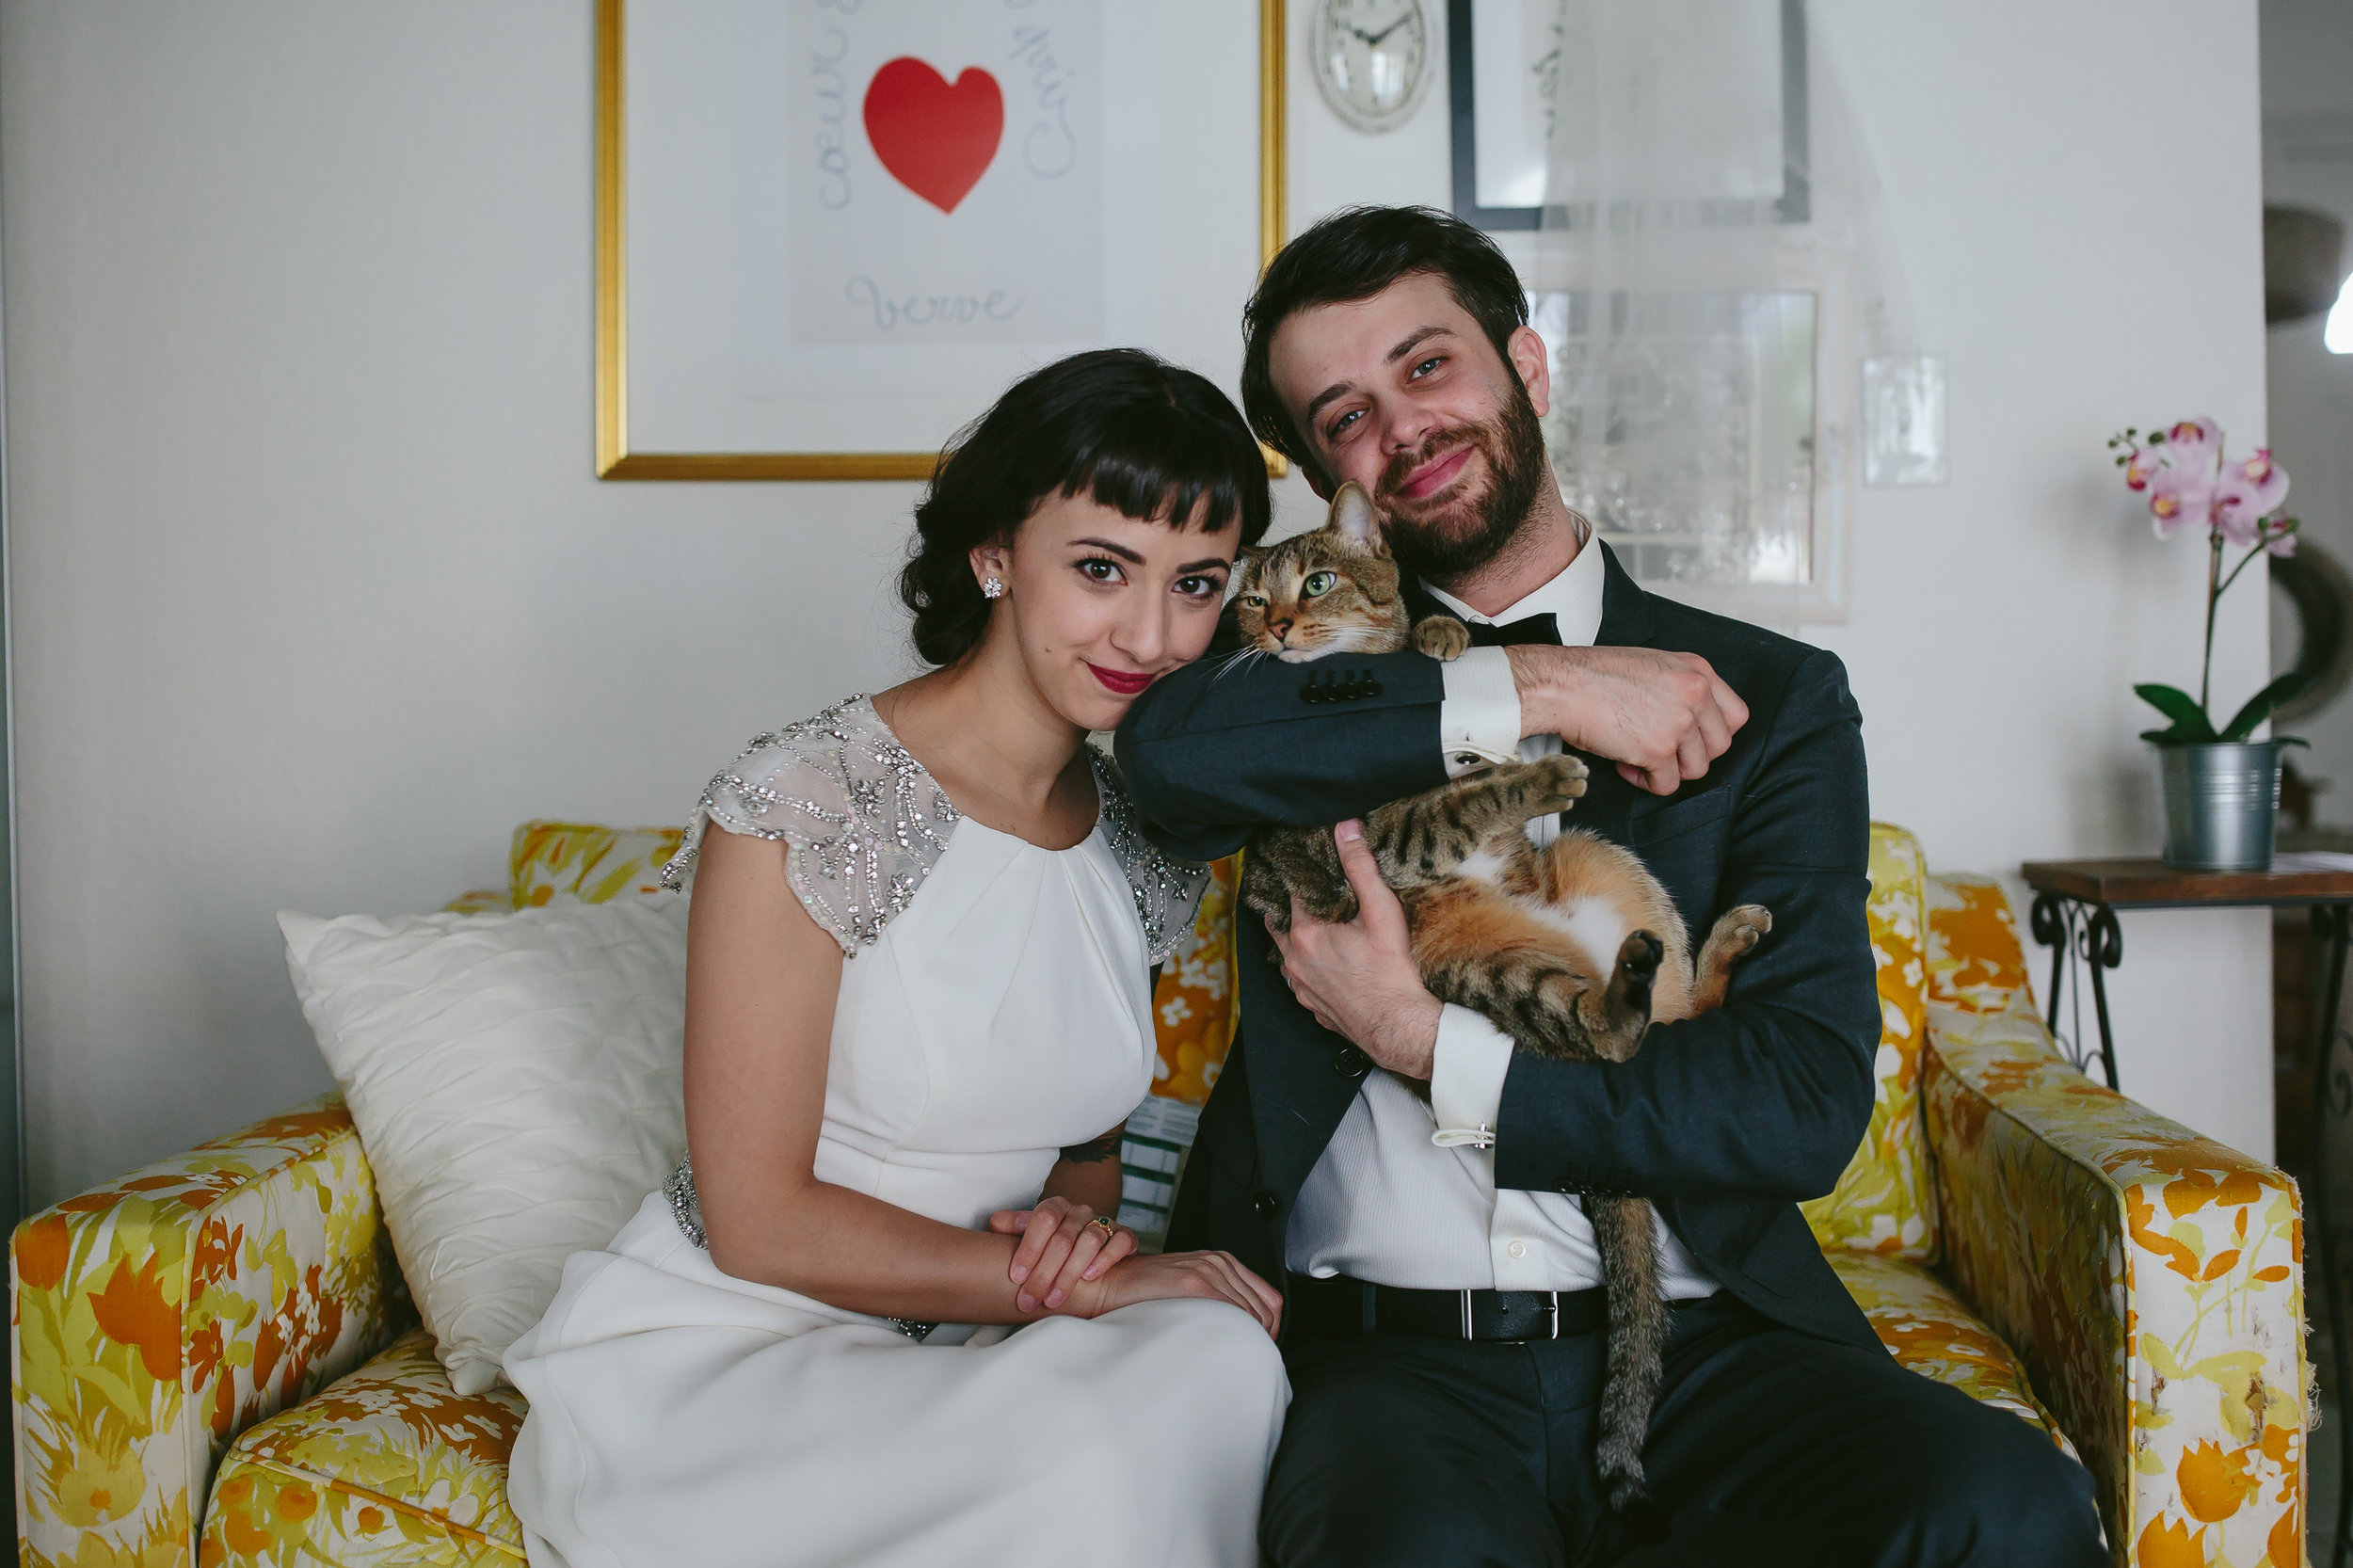 bride_and_groom_cats_in_home_session_wedding_fort_lauderdale_photographer_steph_lynn_photo-39.jpg